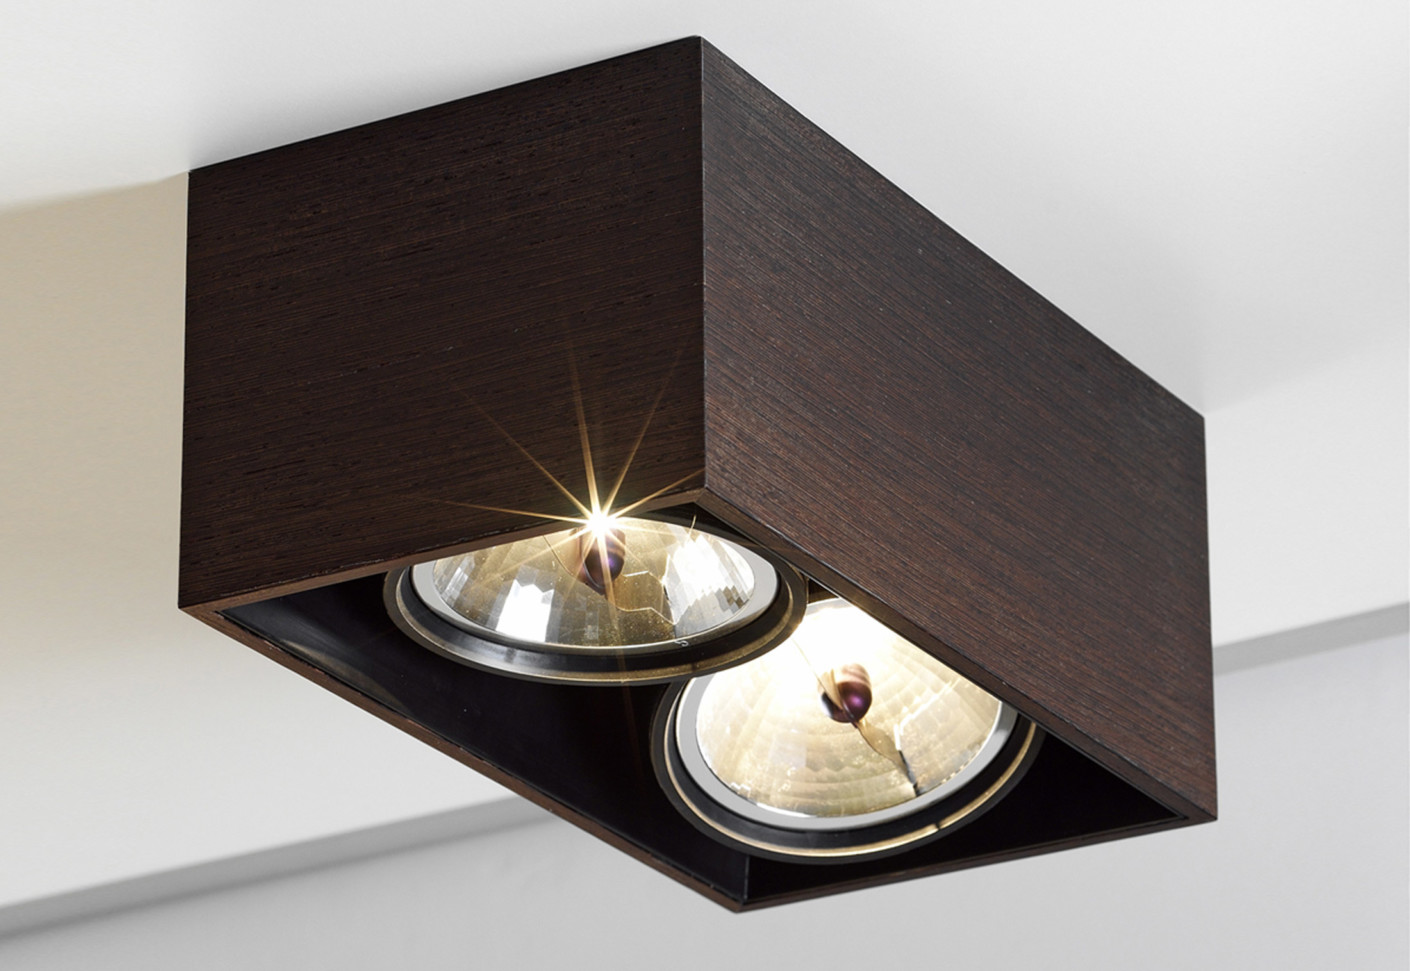 Compass Box Surface Mounted Lamp By Flos Architectural